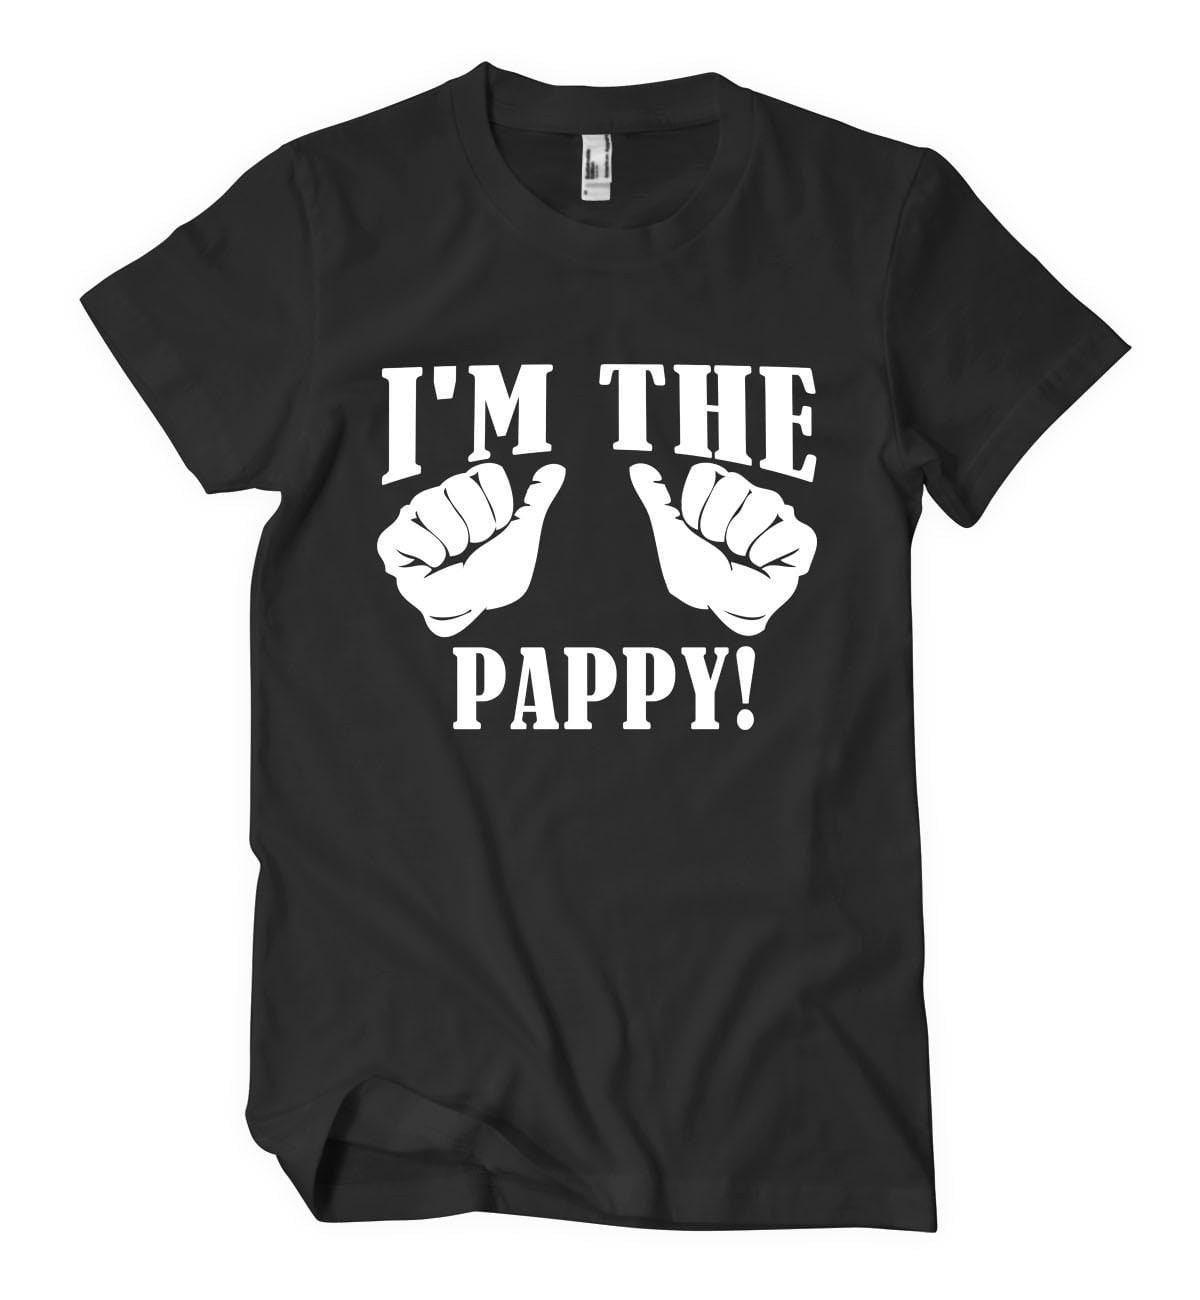 I'm The Pappy! T-Shirt - Izzy & Liv - 2